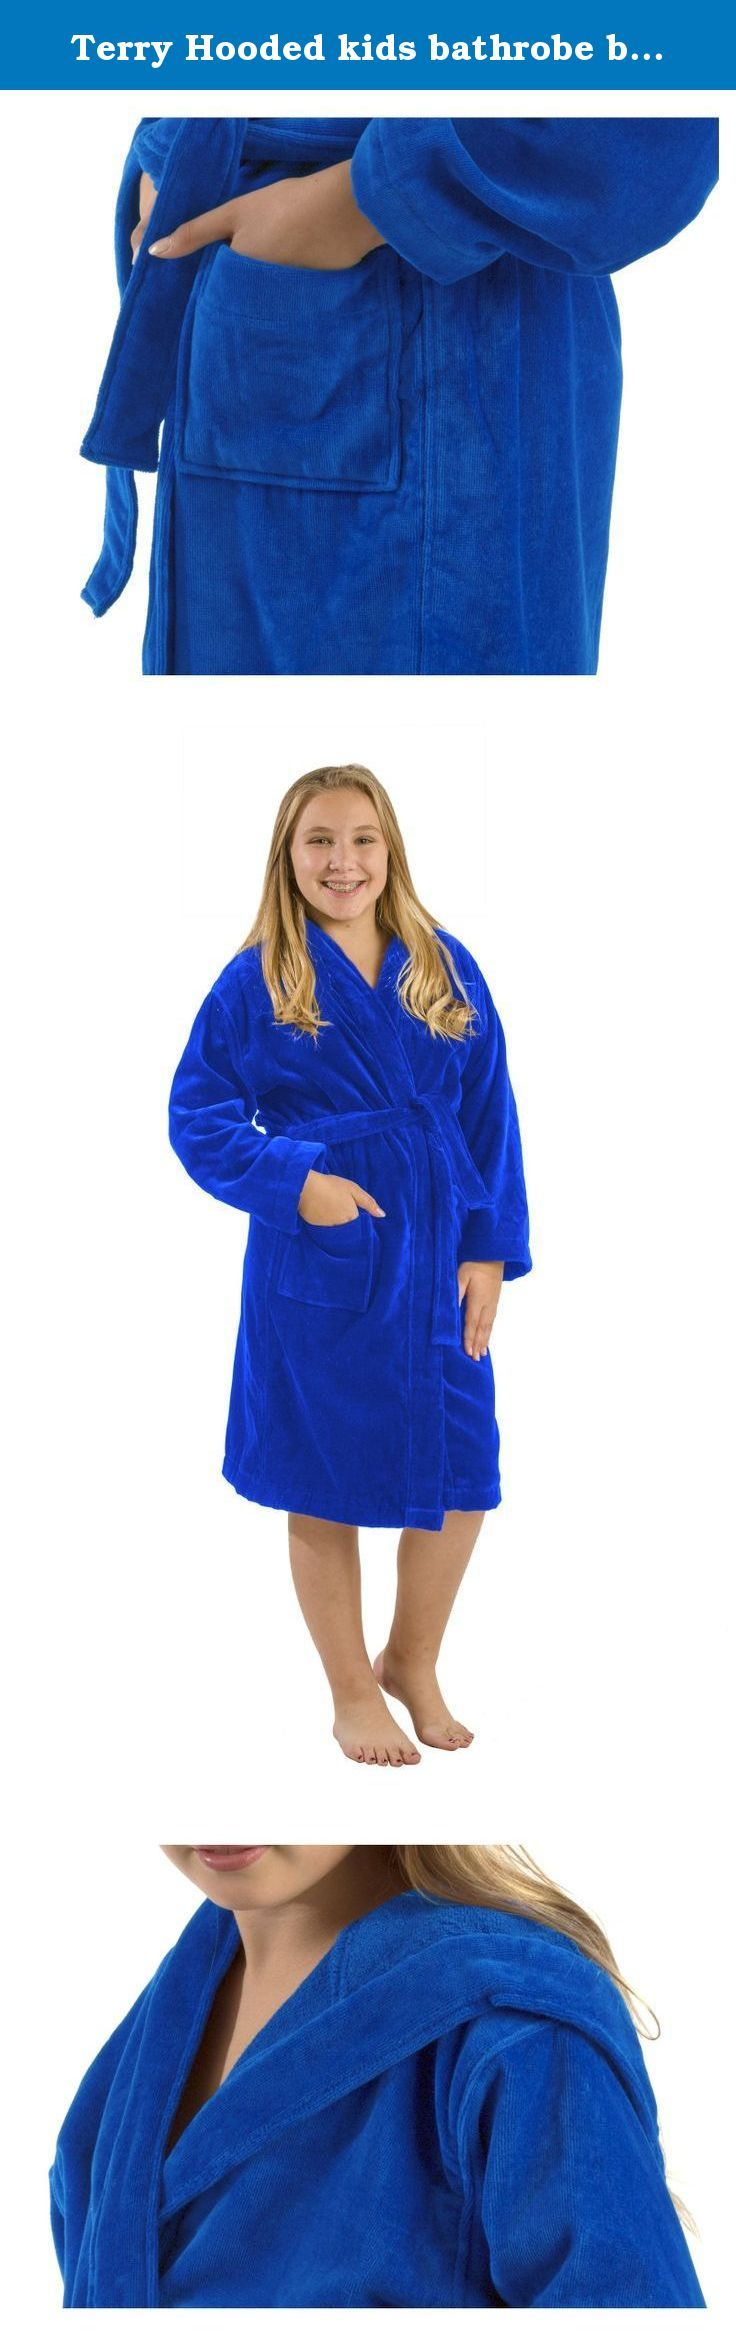 Terry Hooded kids bathrobe bathrobes Royal Blue, Xlarge. TERRY VELOUR COTTON HOODED KIDS BATHROBES -Brand new in the bag -Two patch pockets, double stitch for durability. -These kids robes can be used for bath, spa, shower, swimming pool, lounge or sauna. -100% absorbent Cotton Terrycloth on the Inside & velour cut Terry Cotton on the Outside. -Available Colors: Purple, White, Black,Pink, Fuchsia, Navy, Royal Blue and Red. -It is 400 gsm fabric. -Here is the measurement of the Sizes…